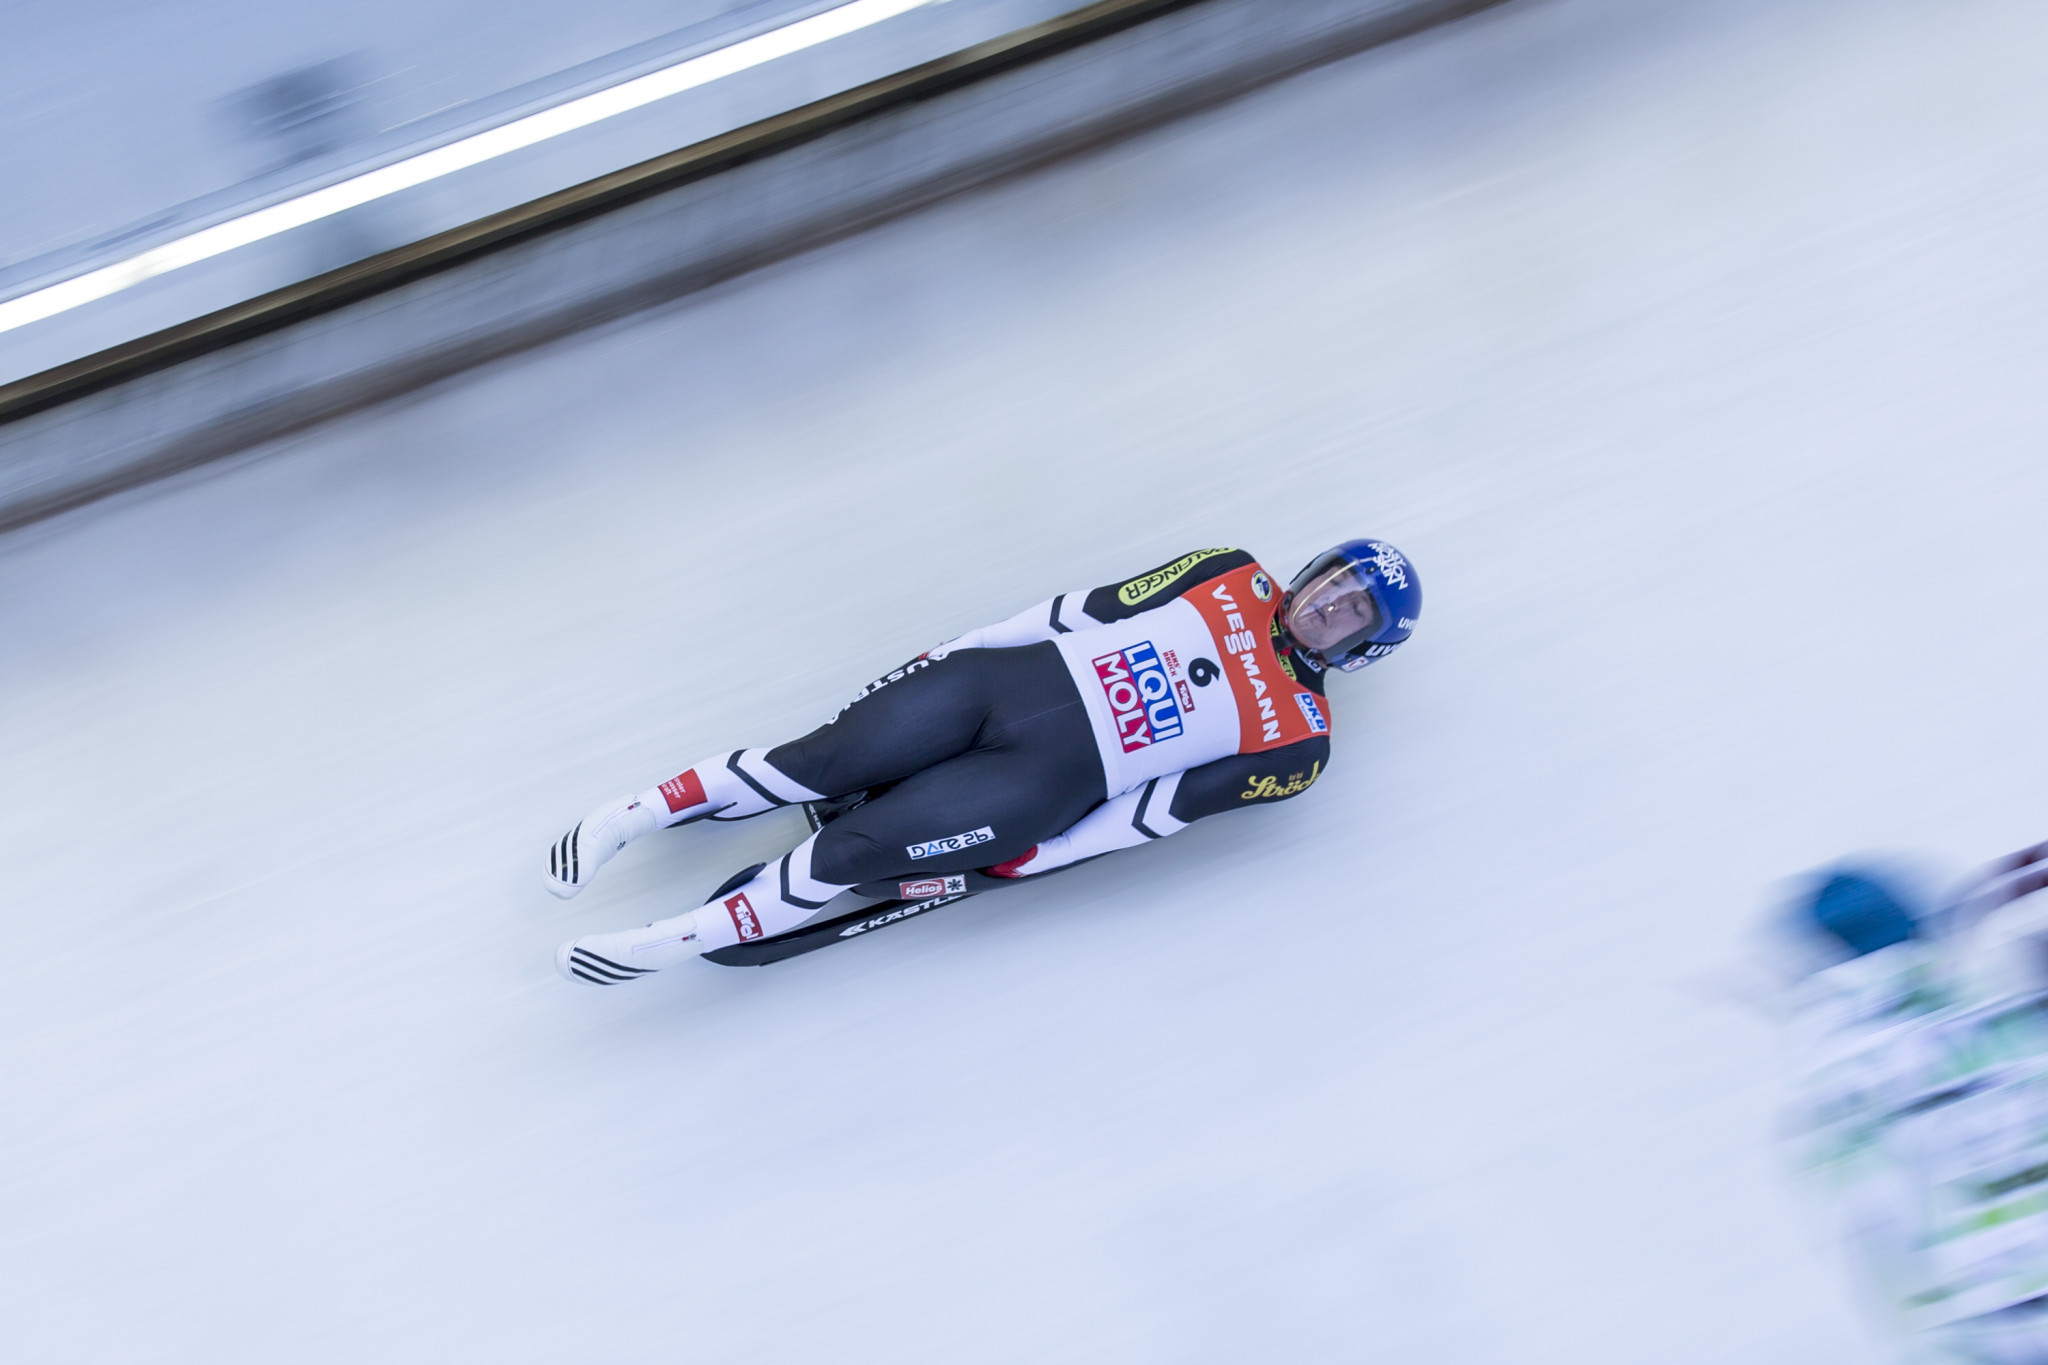 Austria looking to extend lead at Luge World Cup event in Whistler